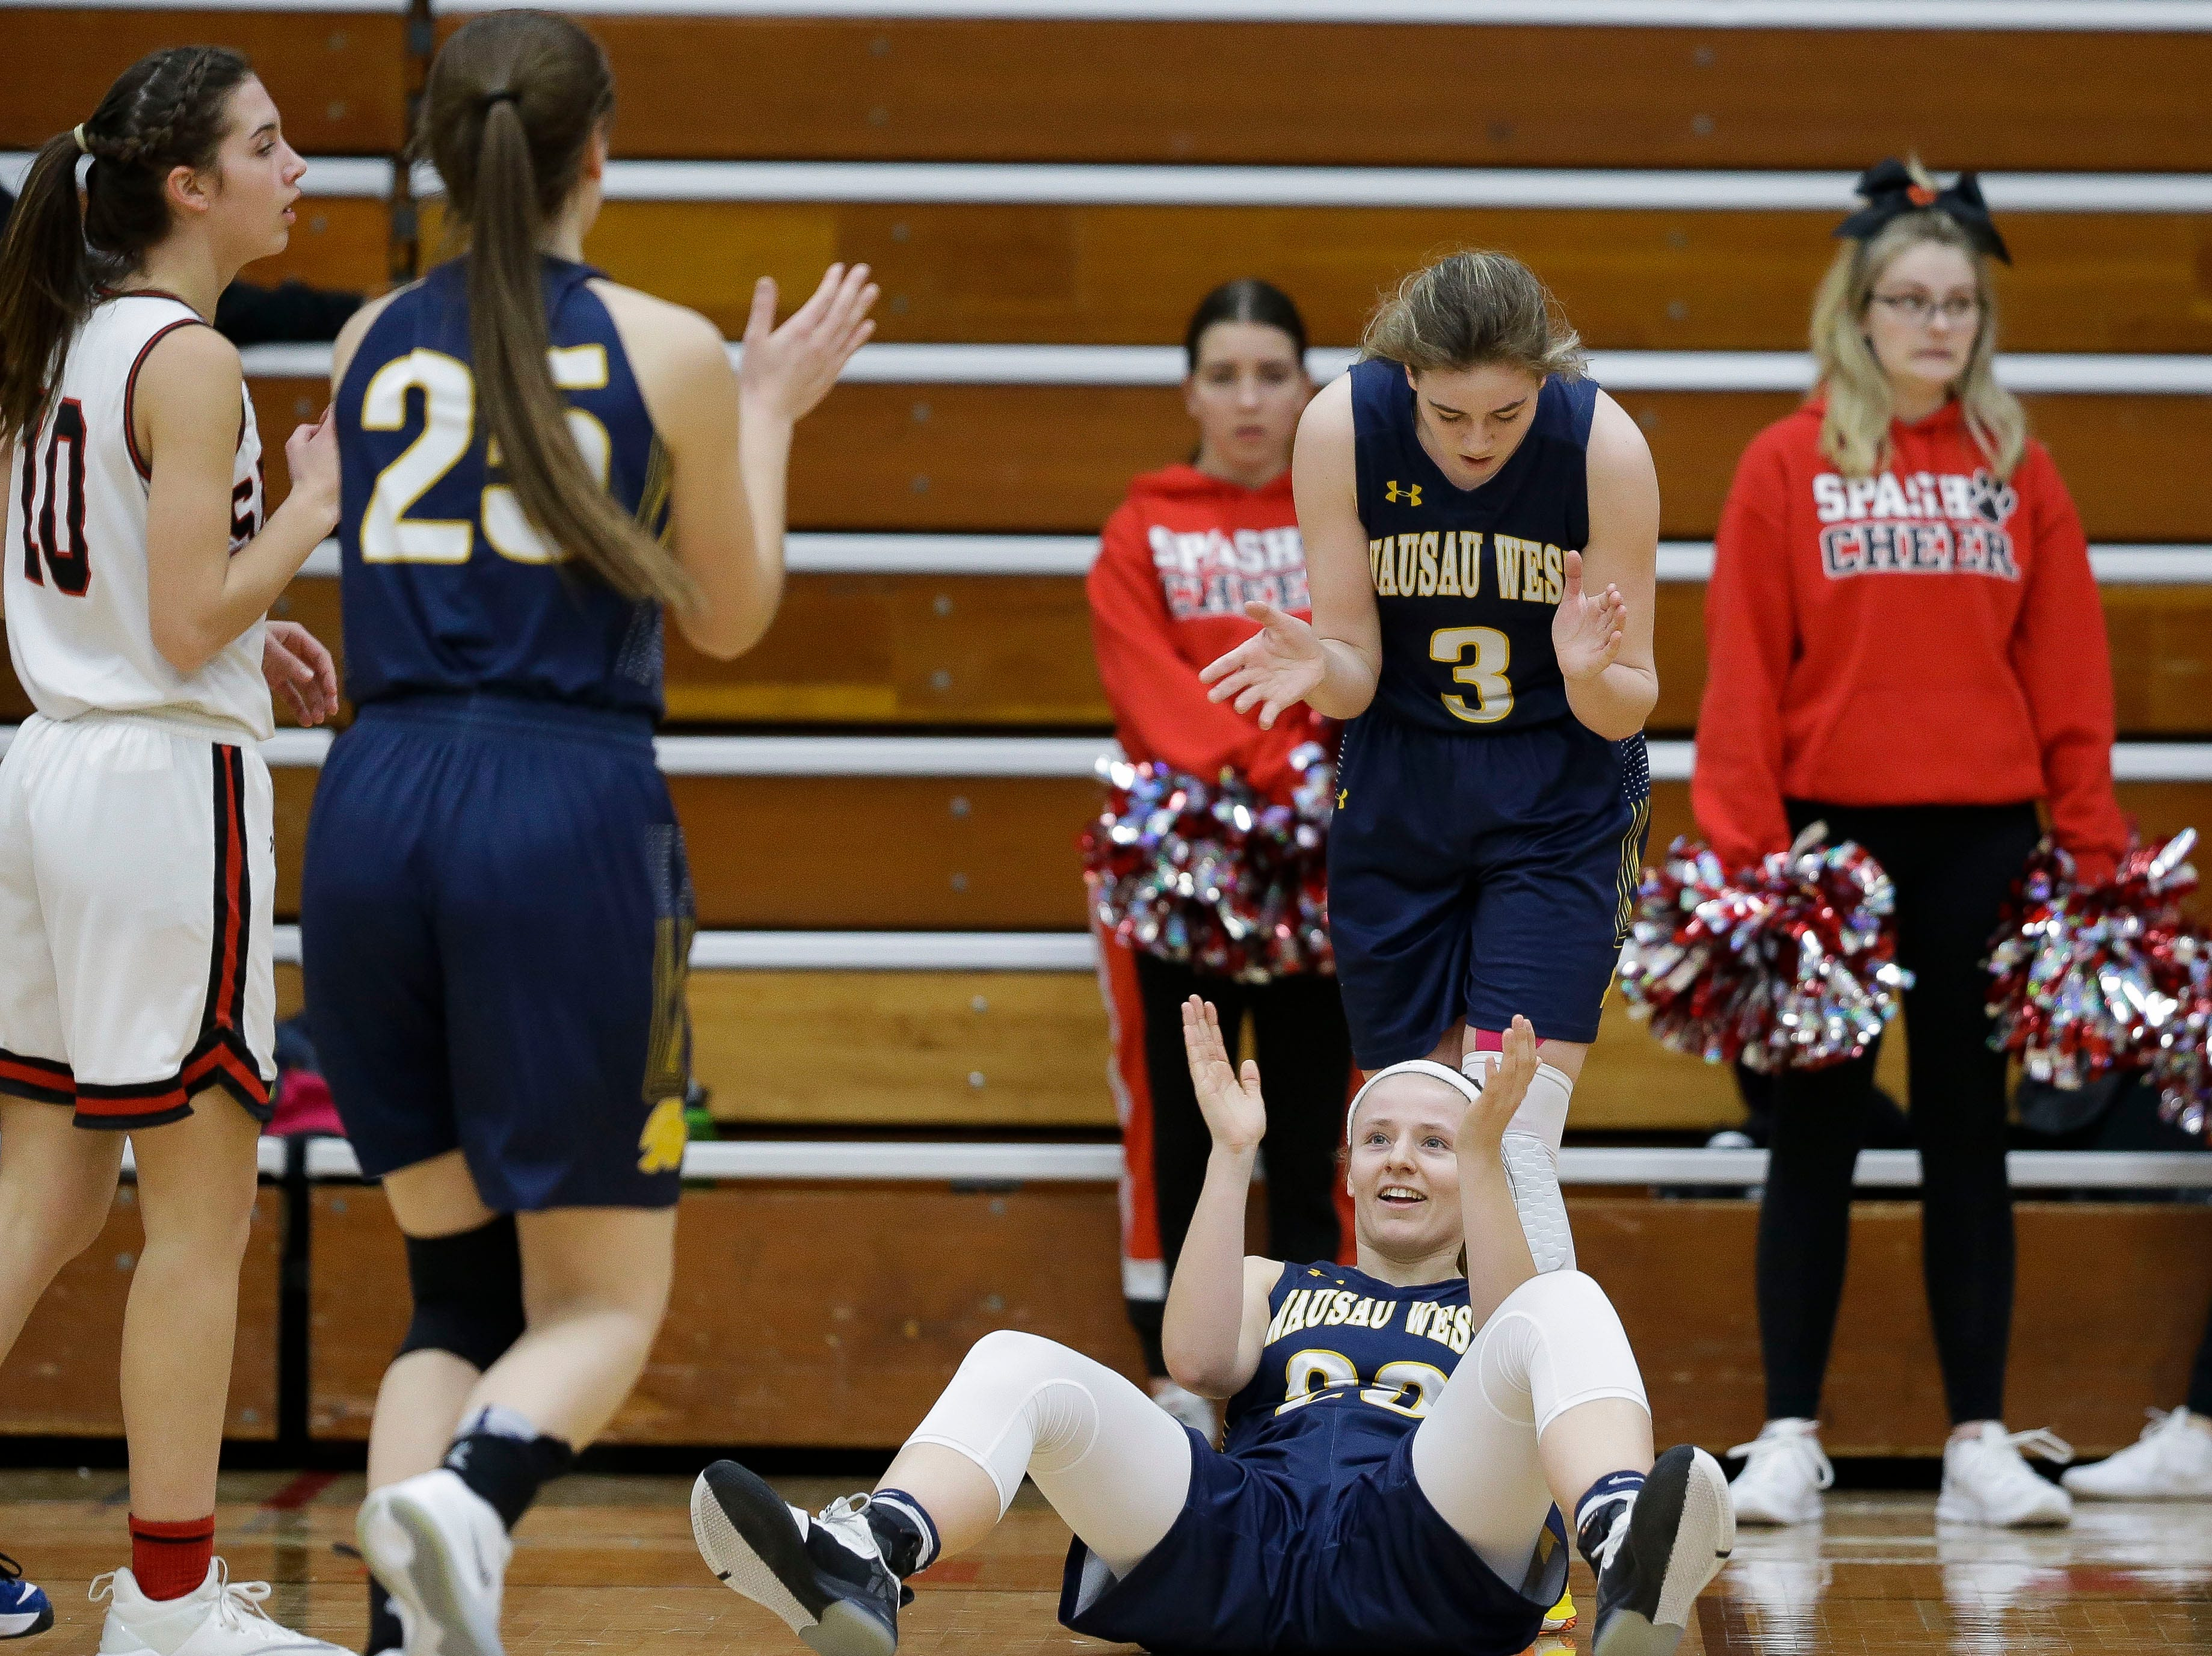 Wausau West's Maddie Schires (23) and Wausau West's Kadie Deaton (3) react after an apparent offensive foul against SPASH on Thursday, February 14, 2019, at SPASH in Stevens Point, Wis. The call was eventually overturned and Schires was called for a foul on the play.Tork Mason/USA TODAY NETWORK-Wisconsin